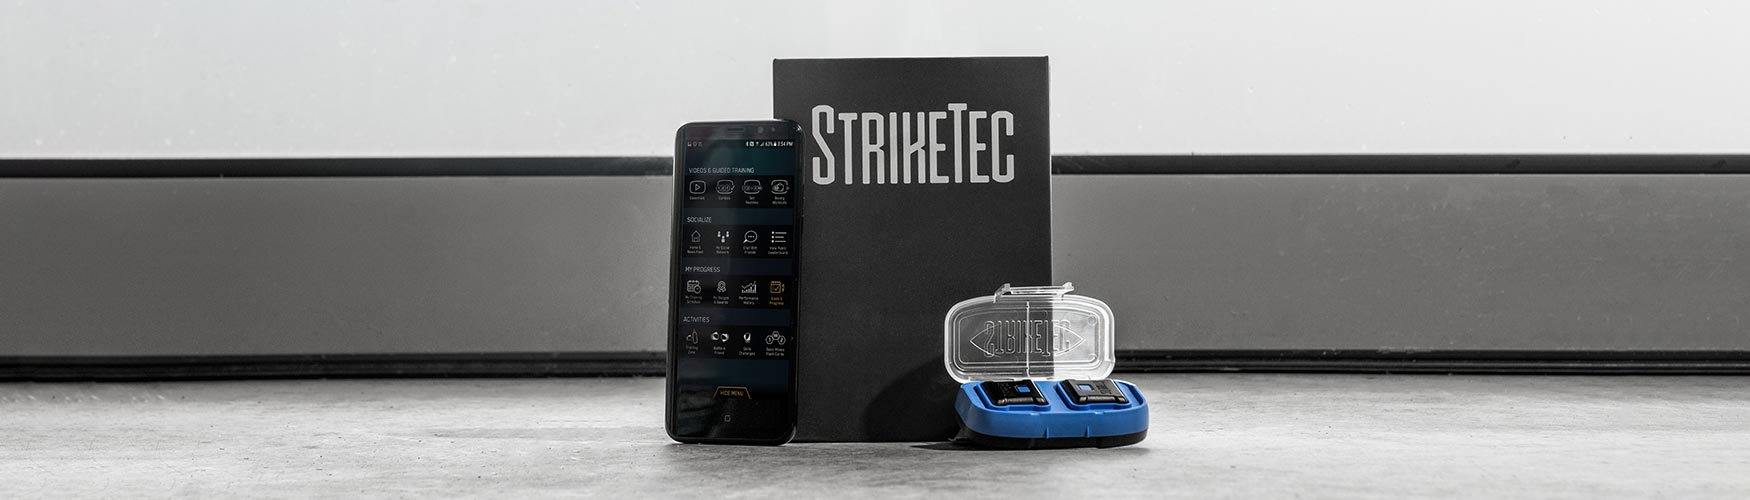 StrikeTec Sensors with an App installed on an Android Phone